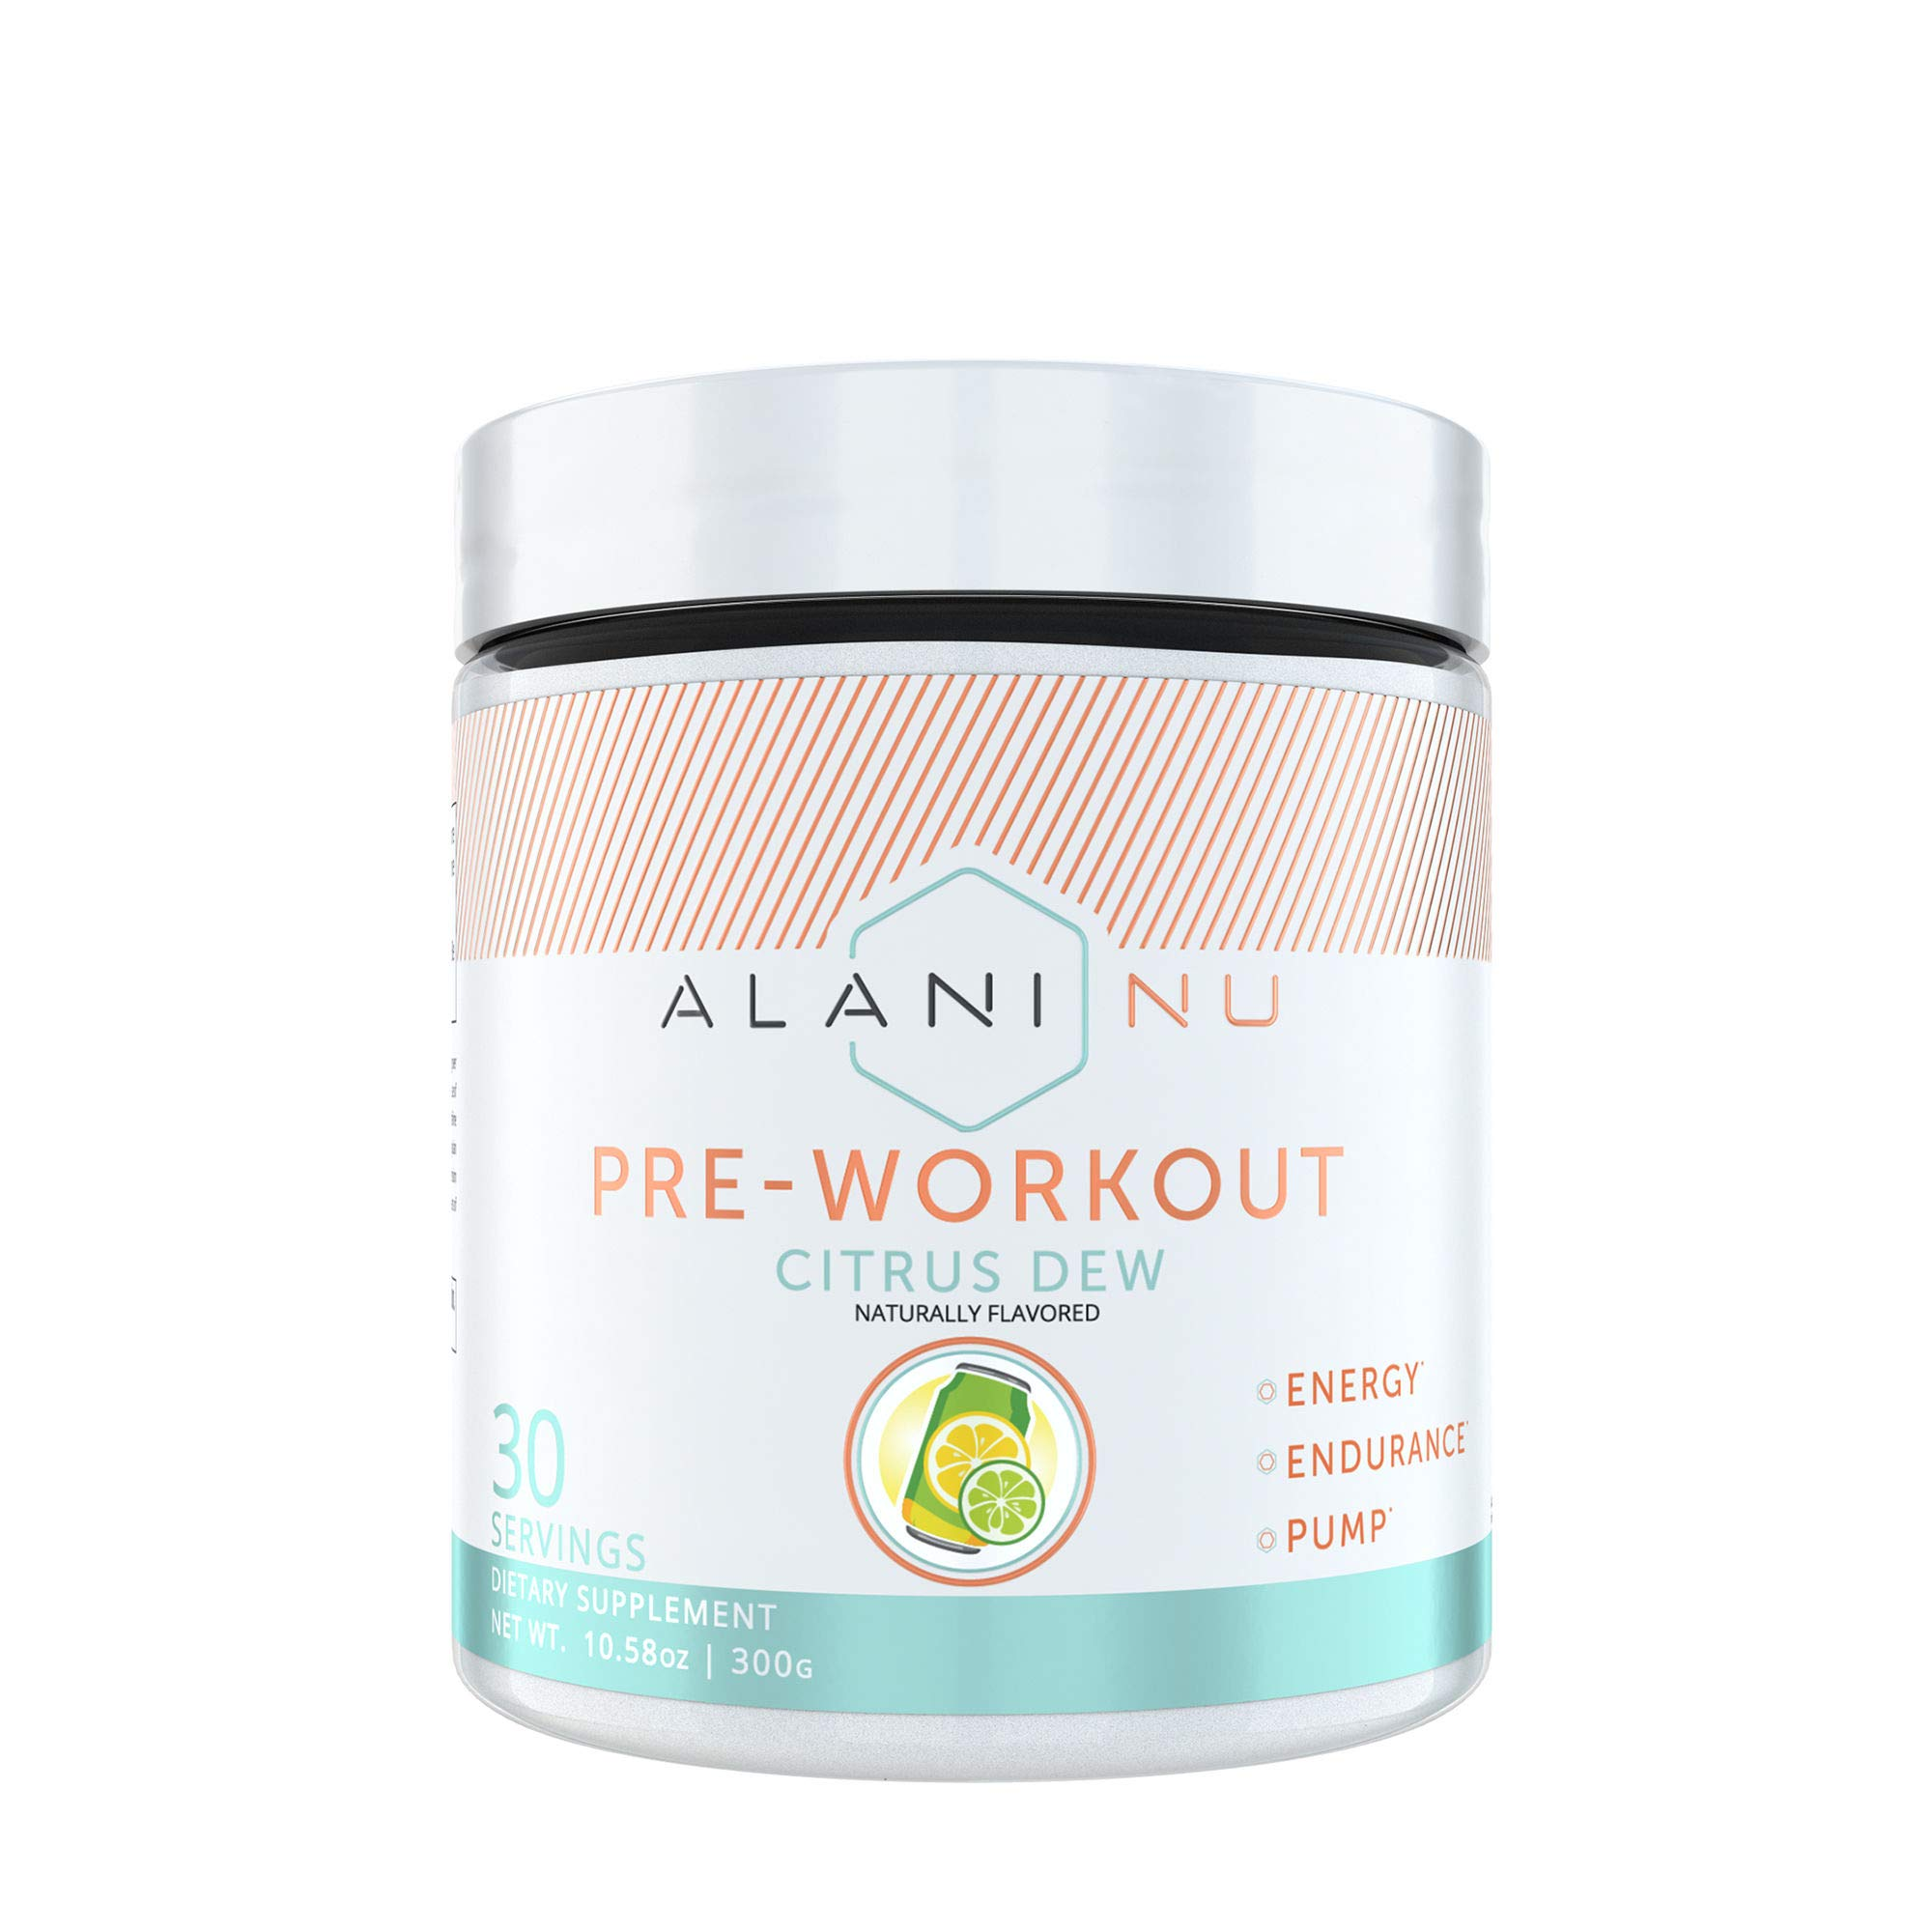 Alani Nu Pre Workout Powder w/Caffeine, L-Theanine & Beta Alanine, Citrus Dew, 30 Servings